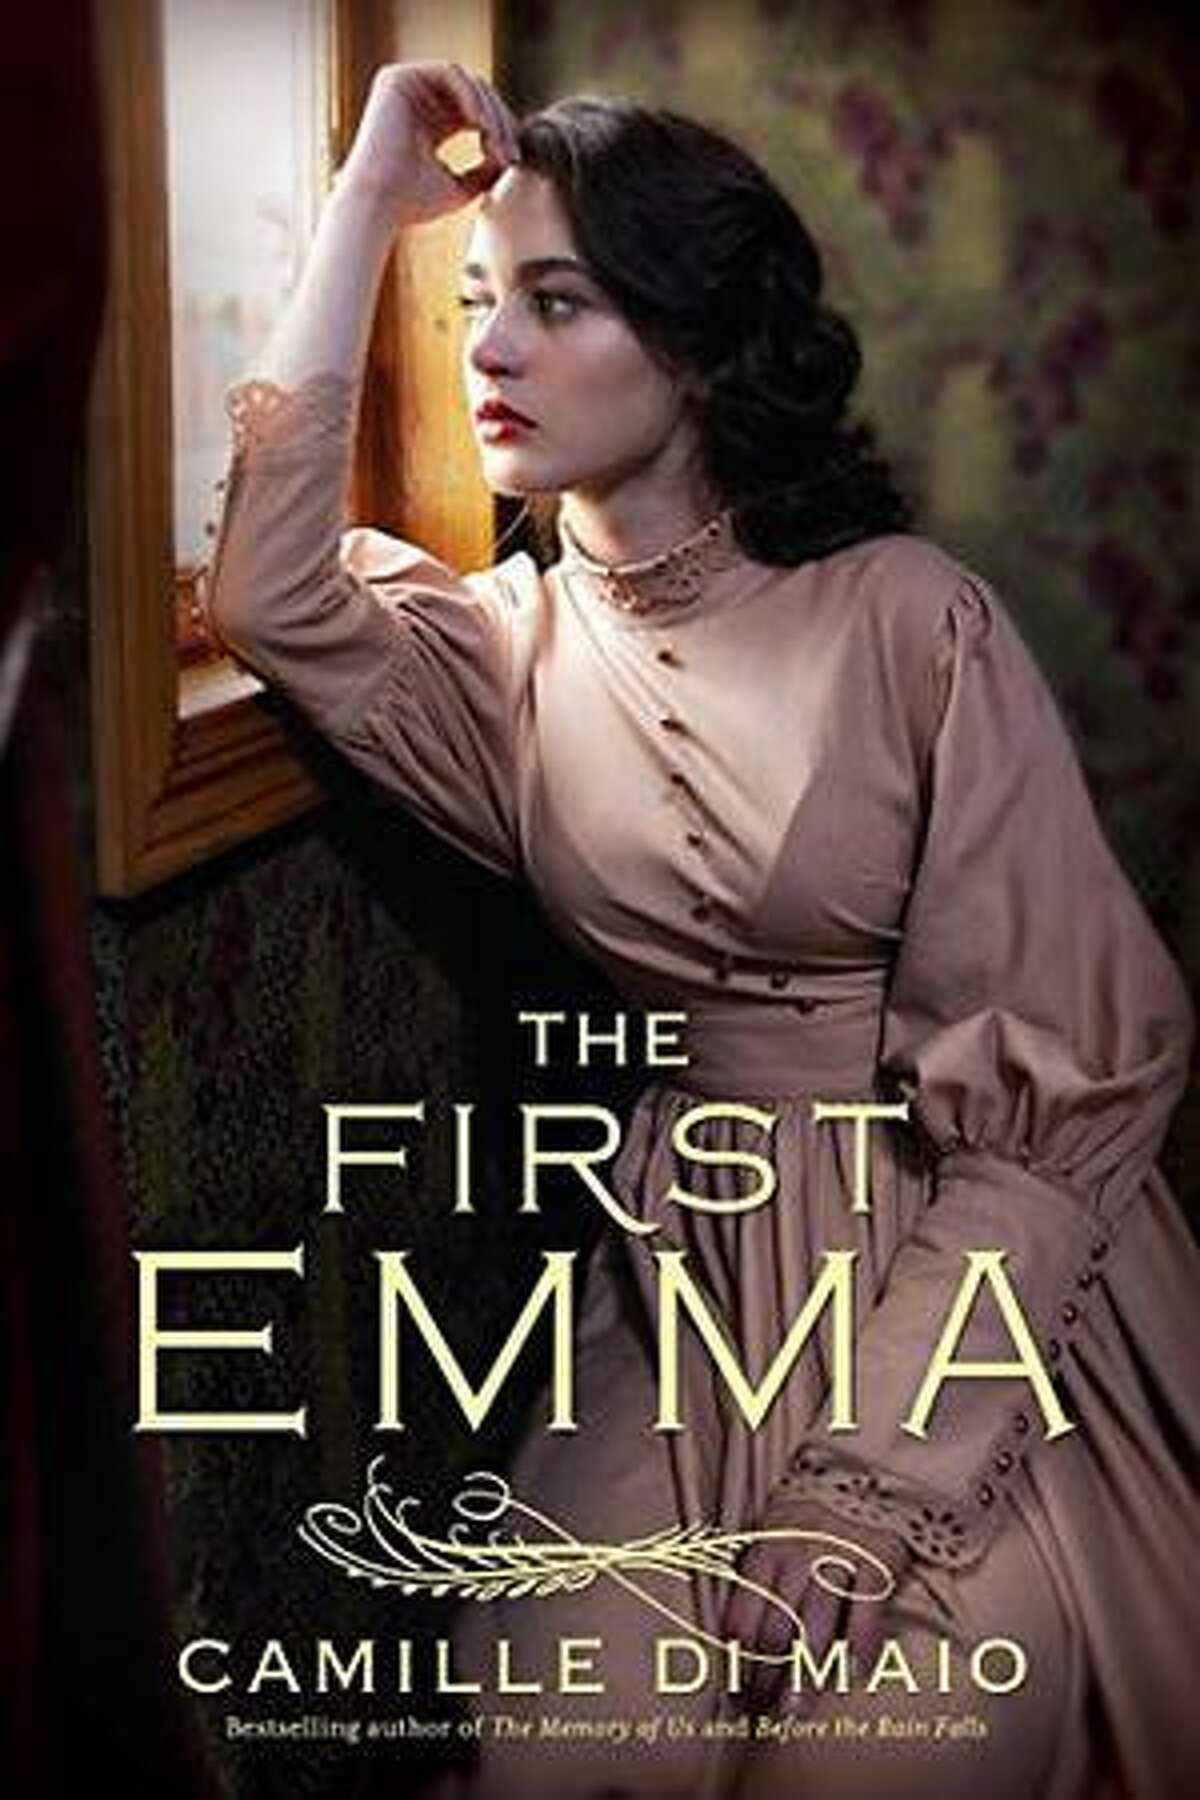 """This is the cover of """"The First Emma"""" by Camille di Maio, a novel based on the real-life Pearl Brewing magnate Otto Koehler. It's told from the point of view of his widow."""